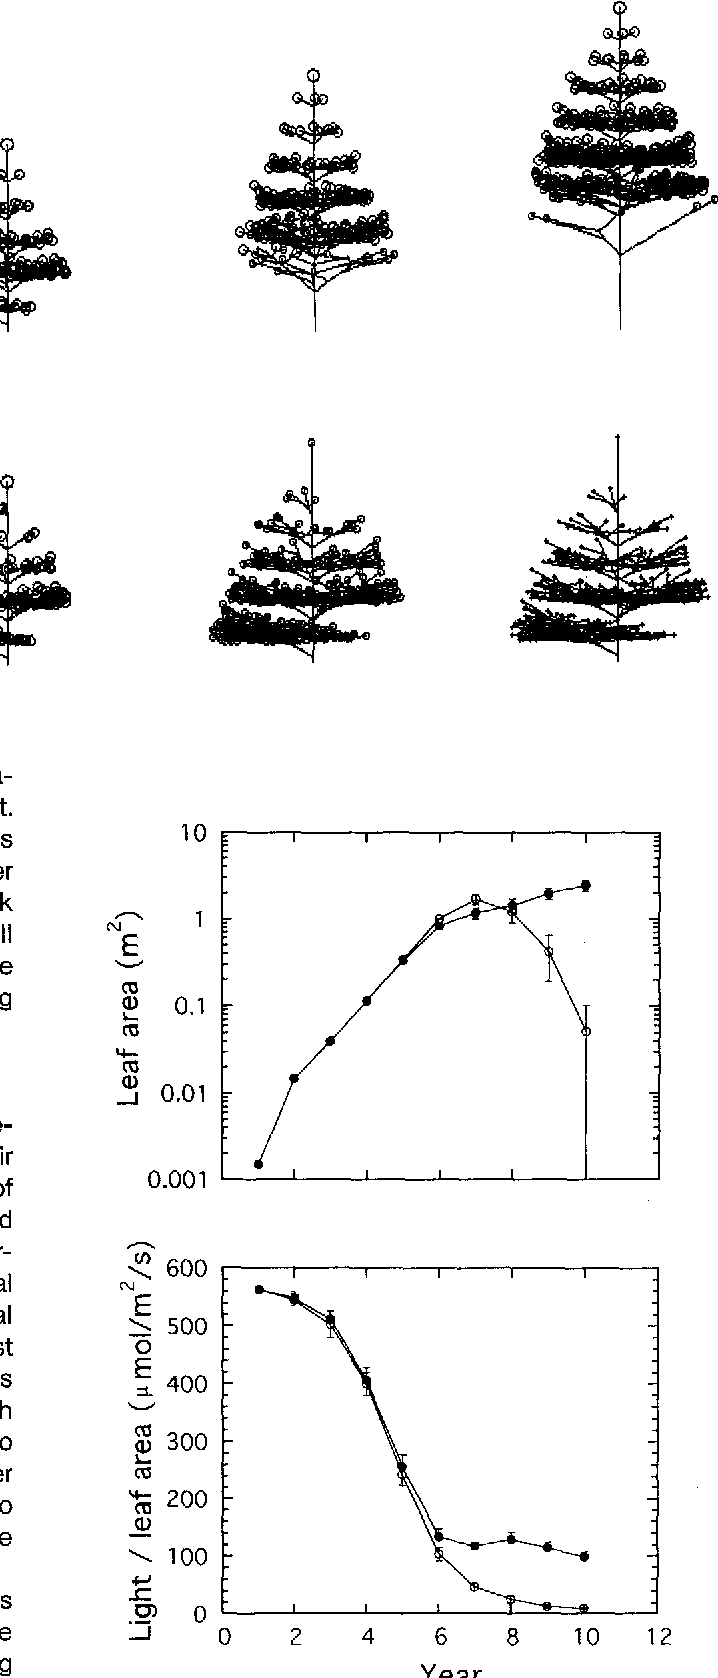 Figure 12 from A simulation model of tree architecture development